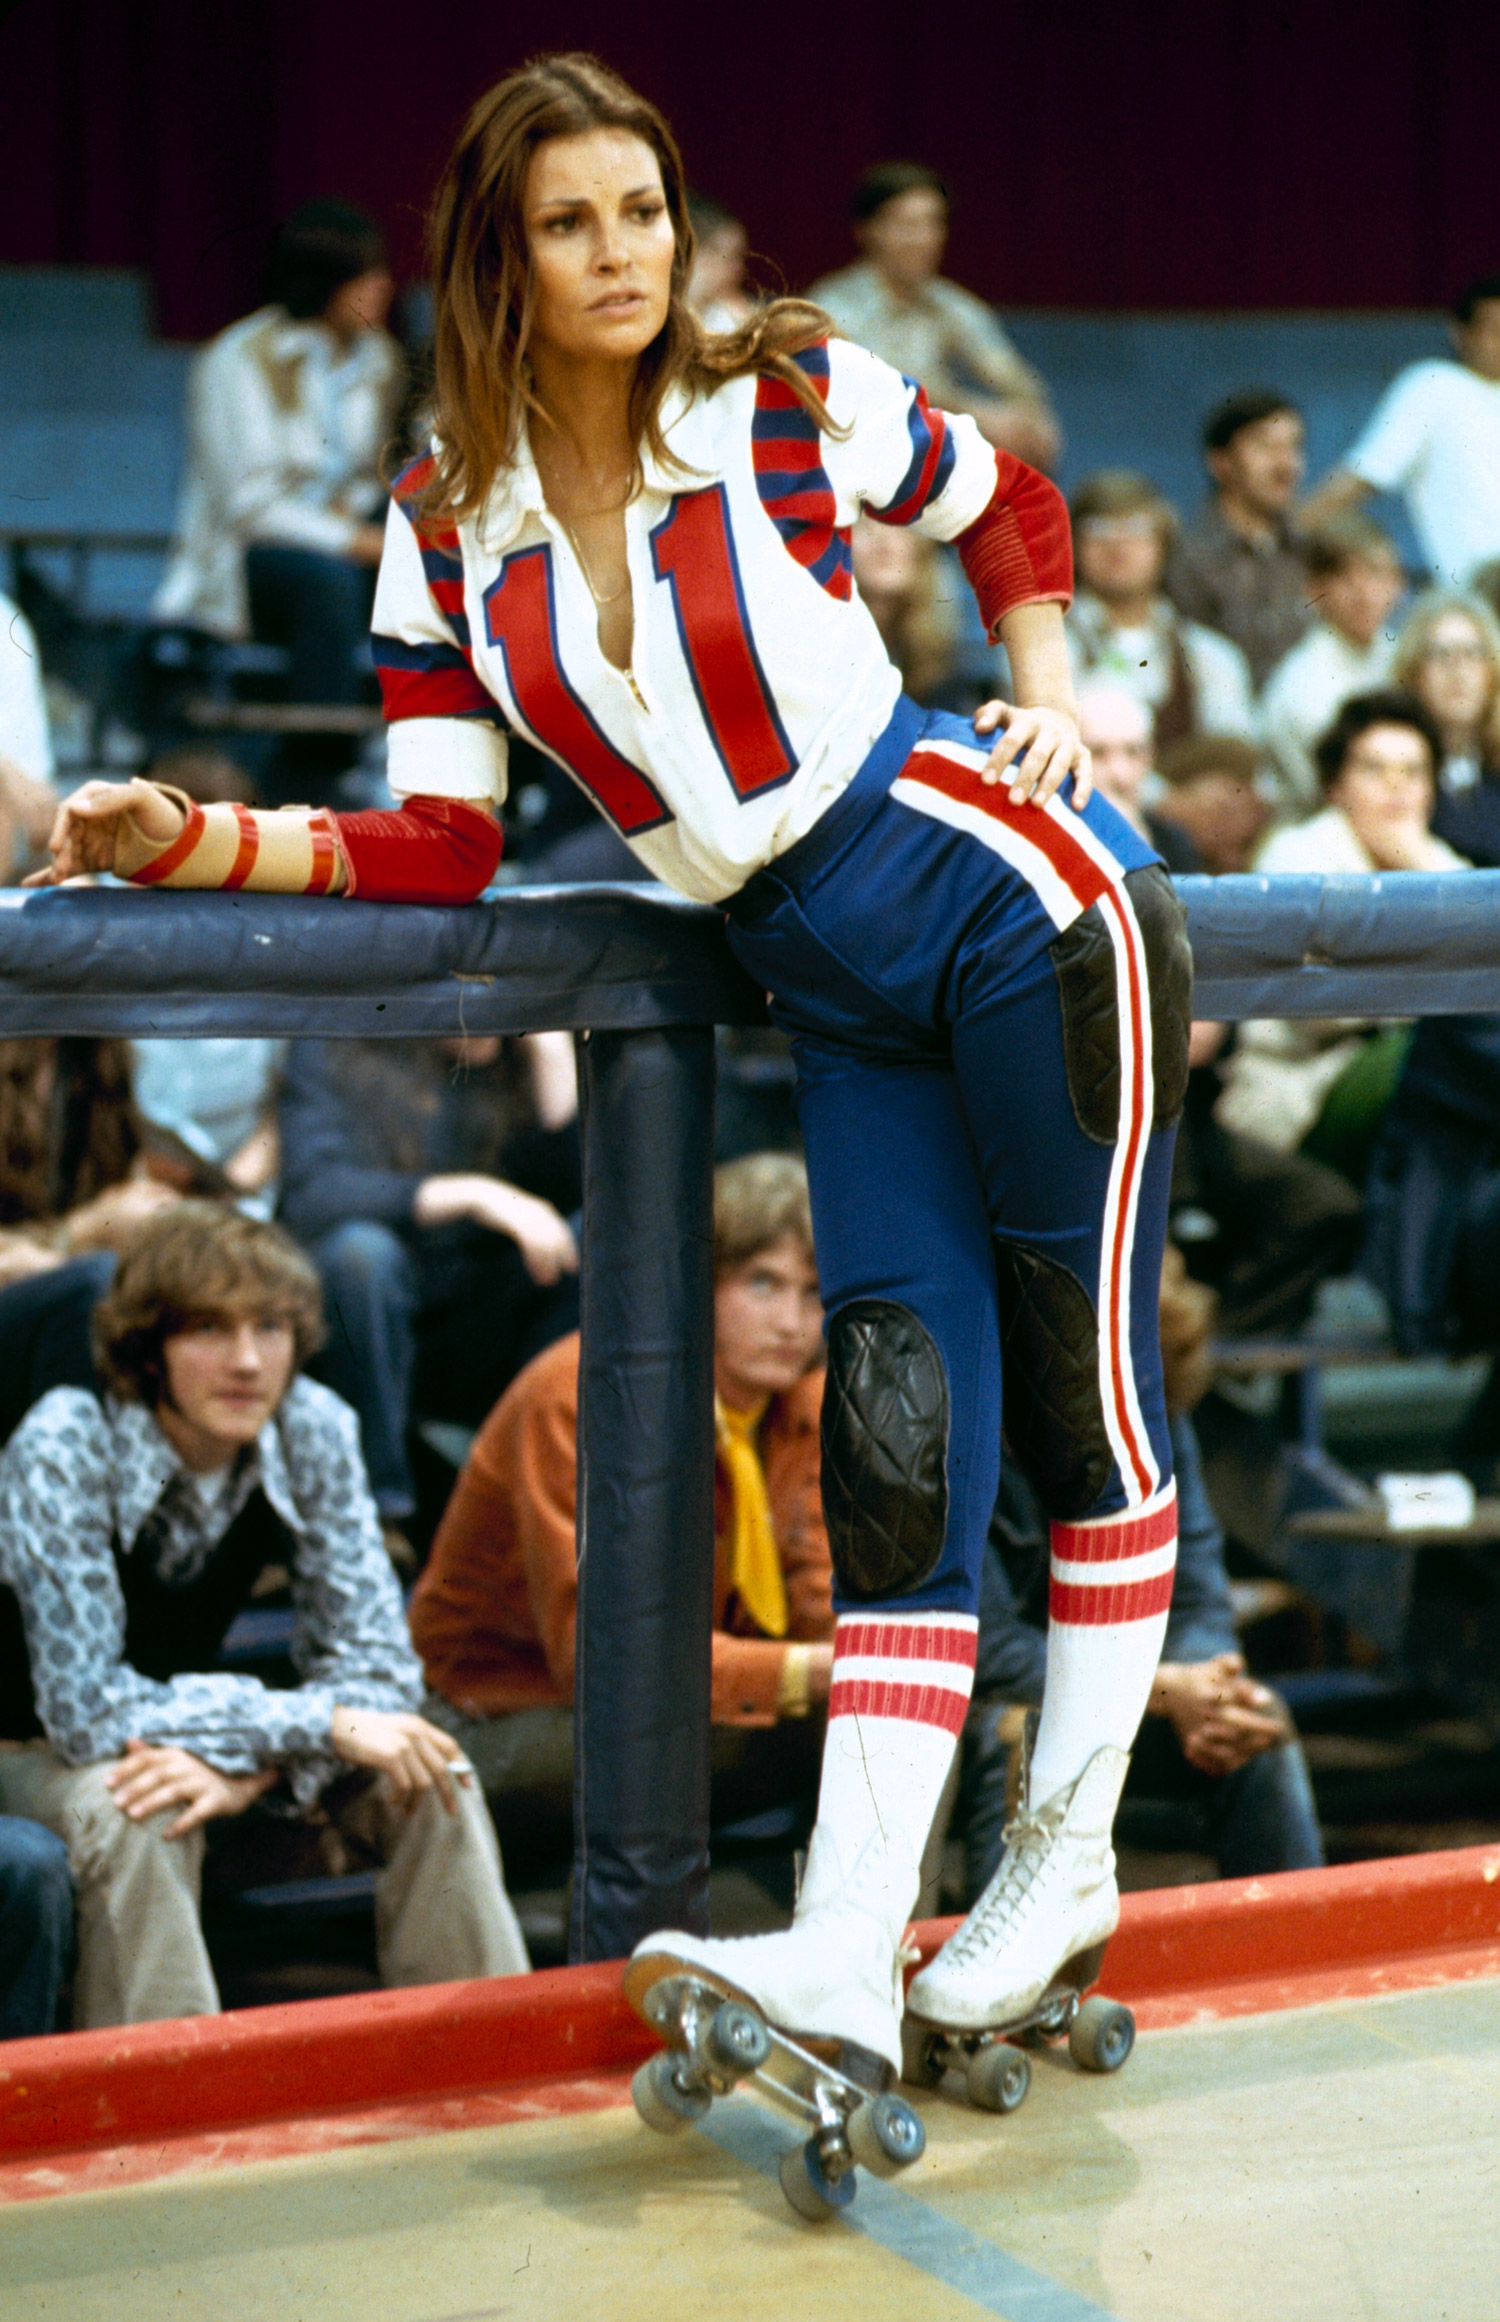 """Make like Raquel Welch in 1972's """"The Kansas City Bomber"""" by wearing a roller derby uniform and white lace-up skates."""